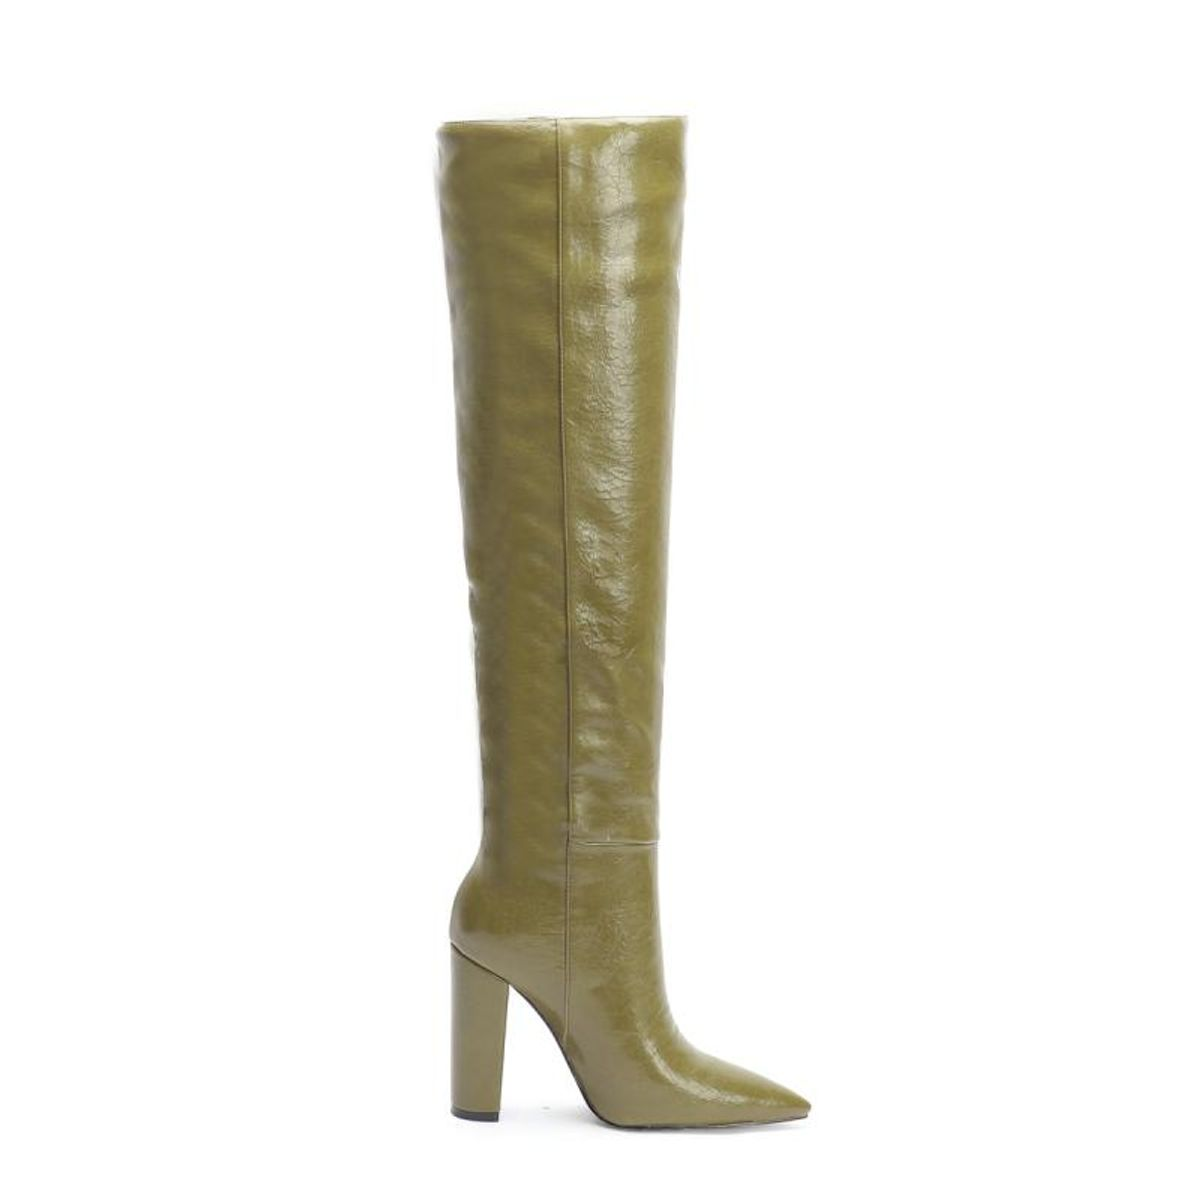 up 2 step trendy leather pointed toe block heel knee high boots